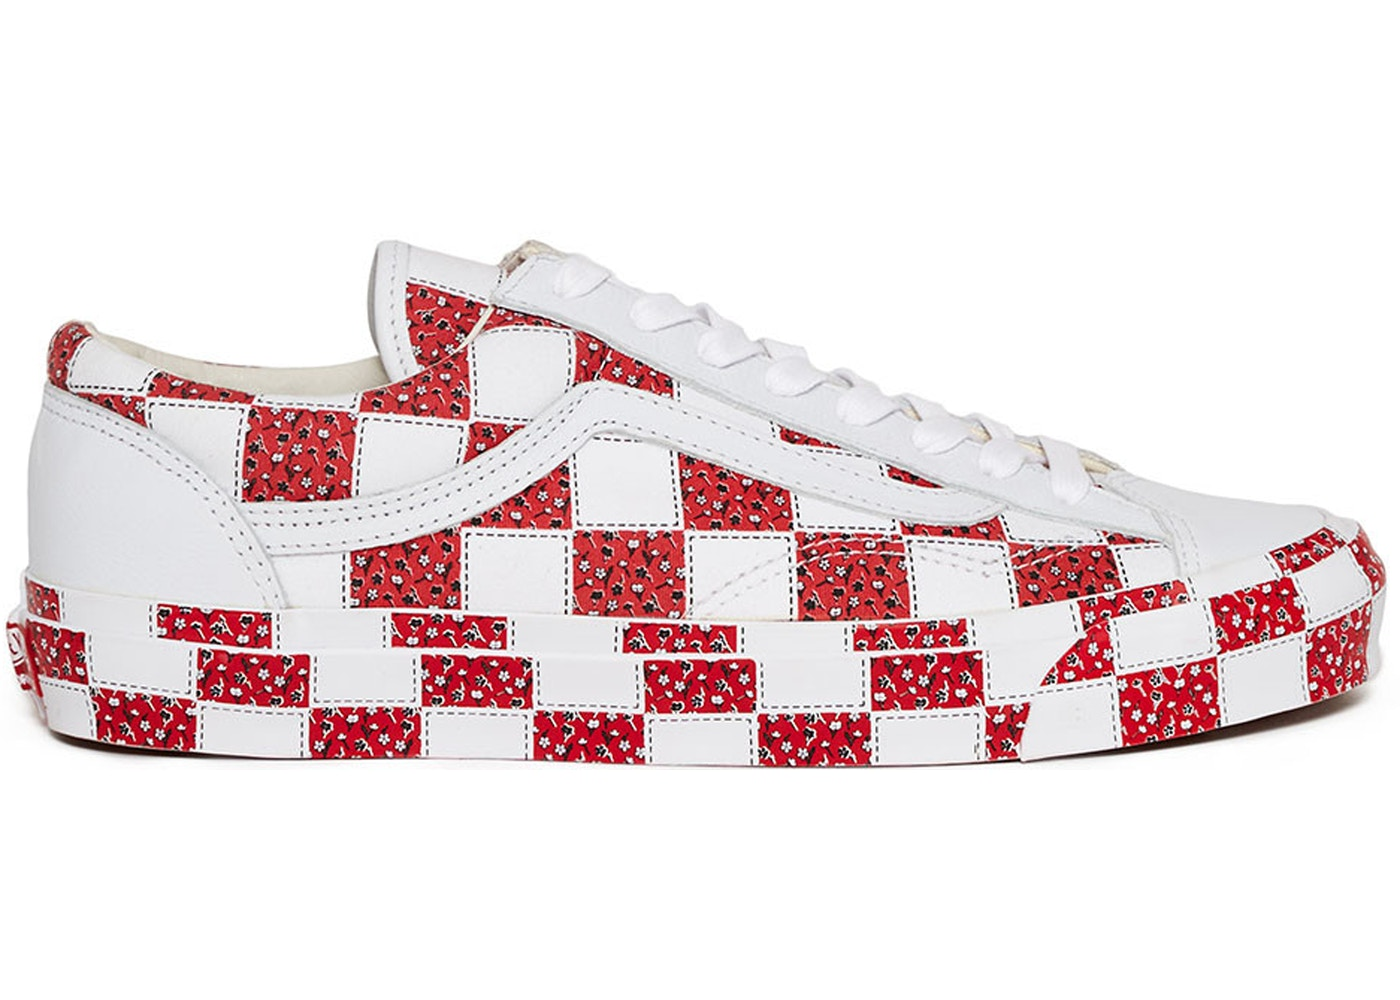 74c8efe4c14 Vans Style 36 Opening Ceremony Quilt Pack White